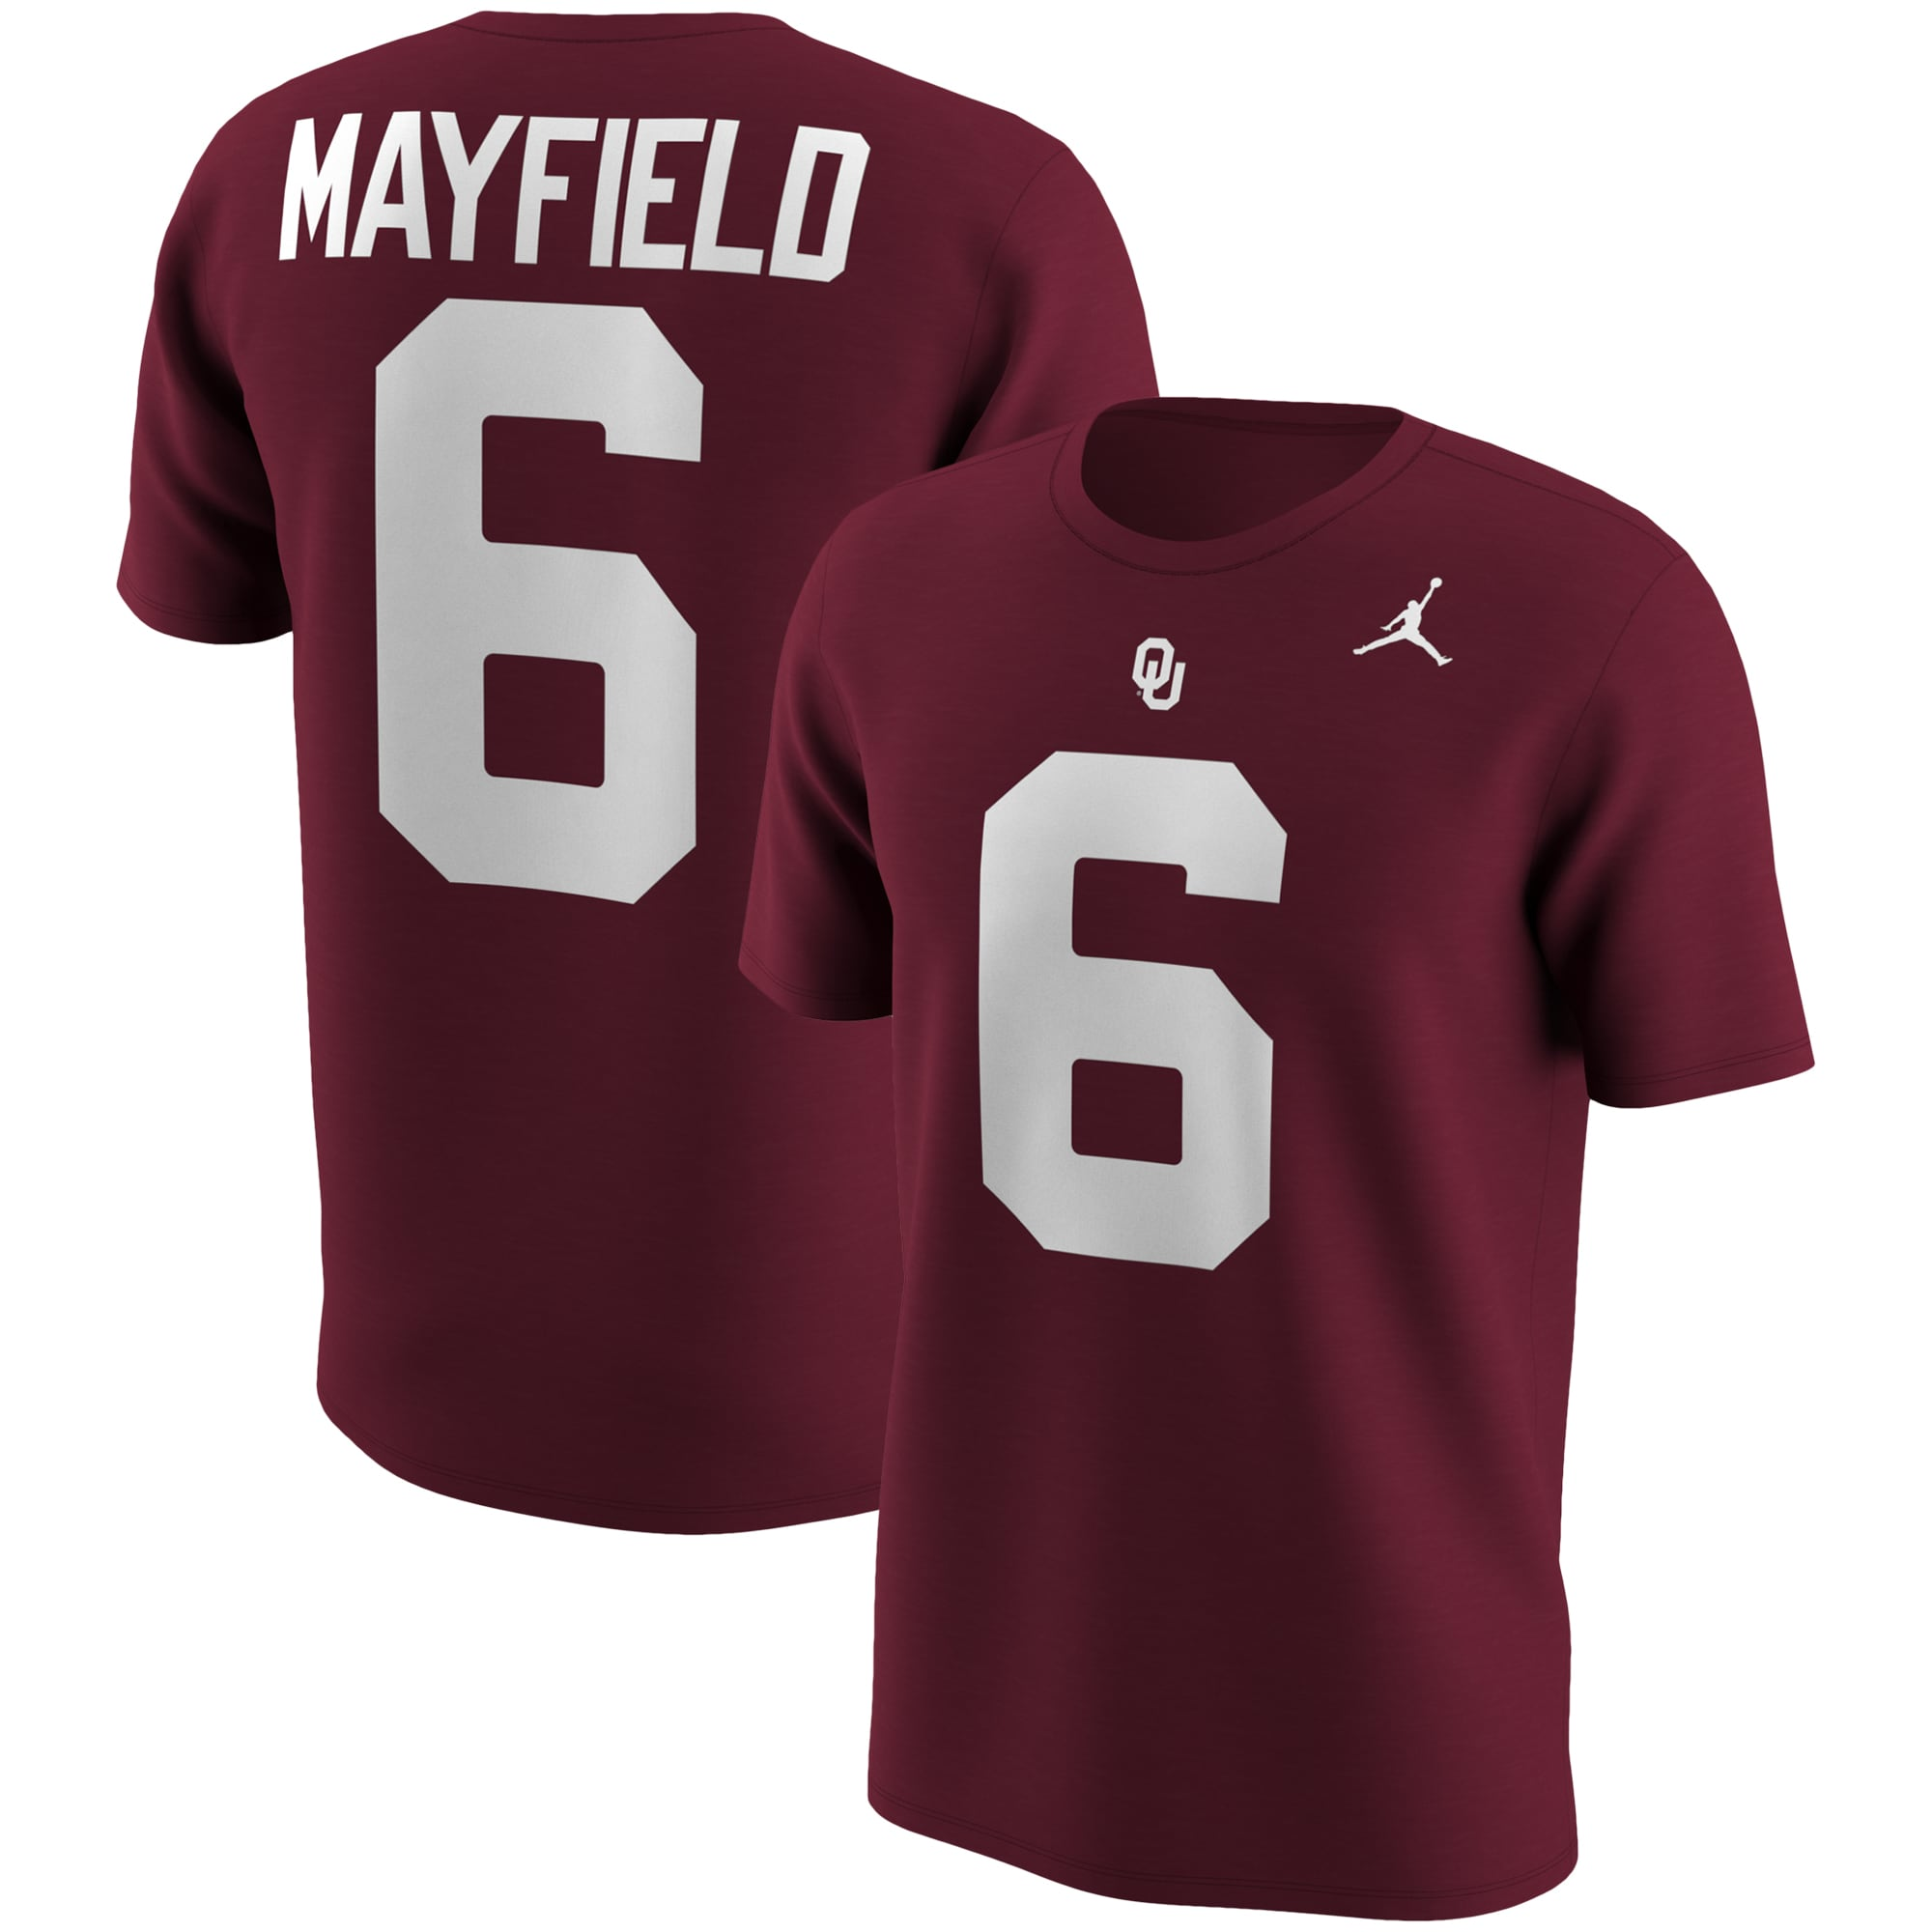 Baker Mayfield Oklahoma Sooners Jordan Brand College Name & Number T-Shirt - Crimson